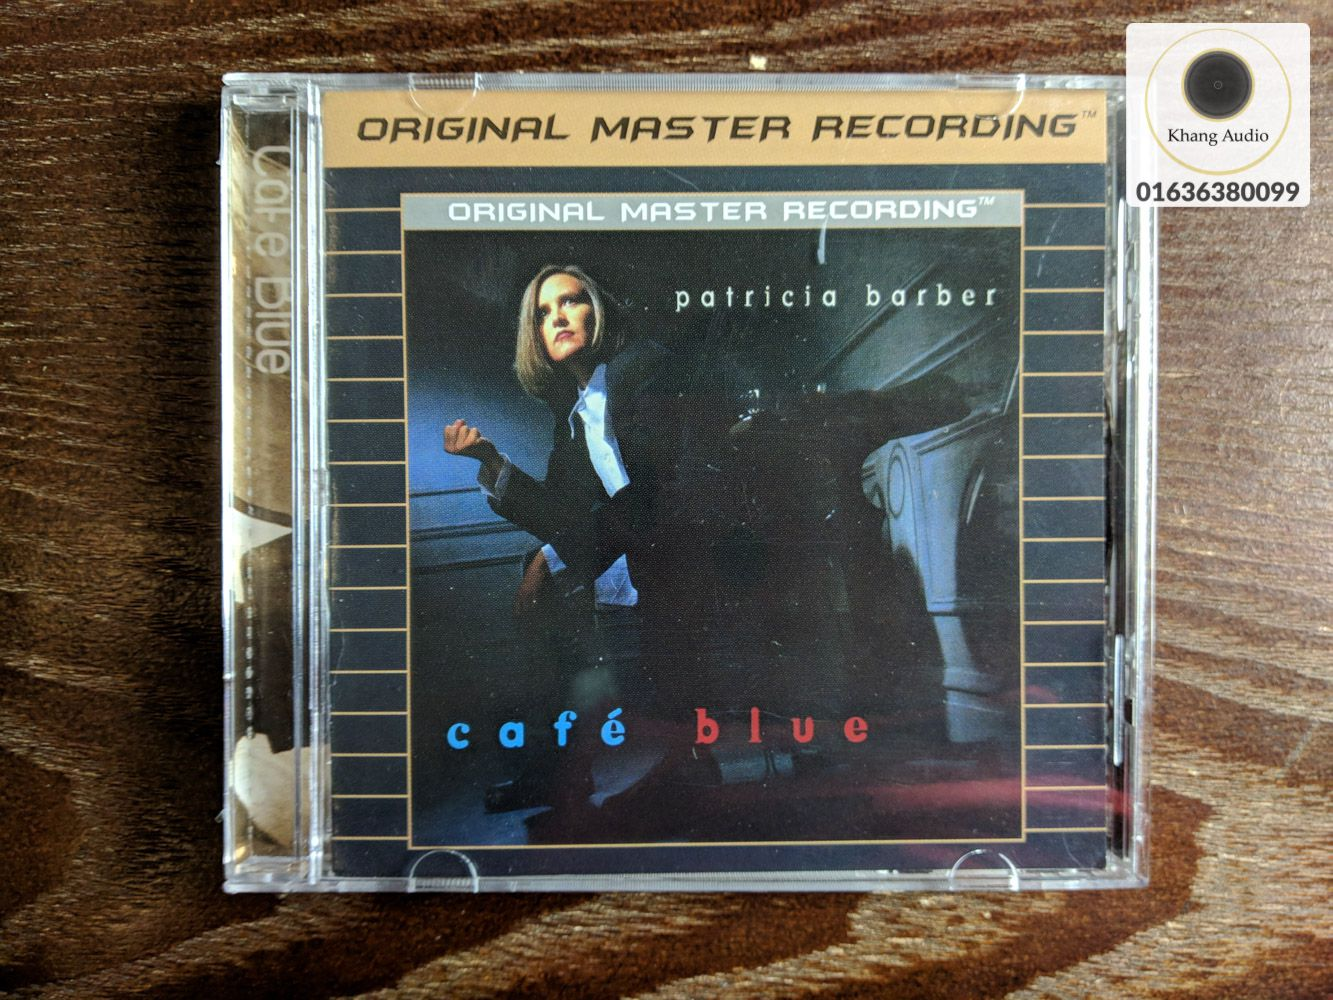 Cafe Blue - Patricia Barber Khang Audio 0336380099